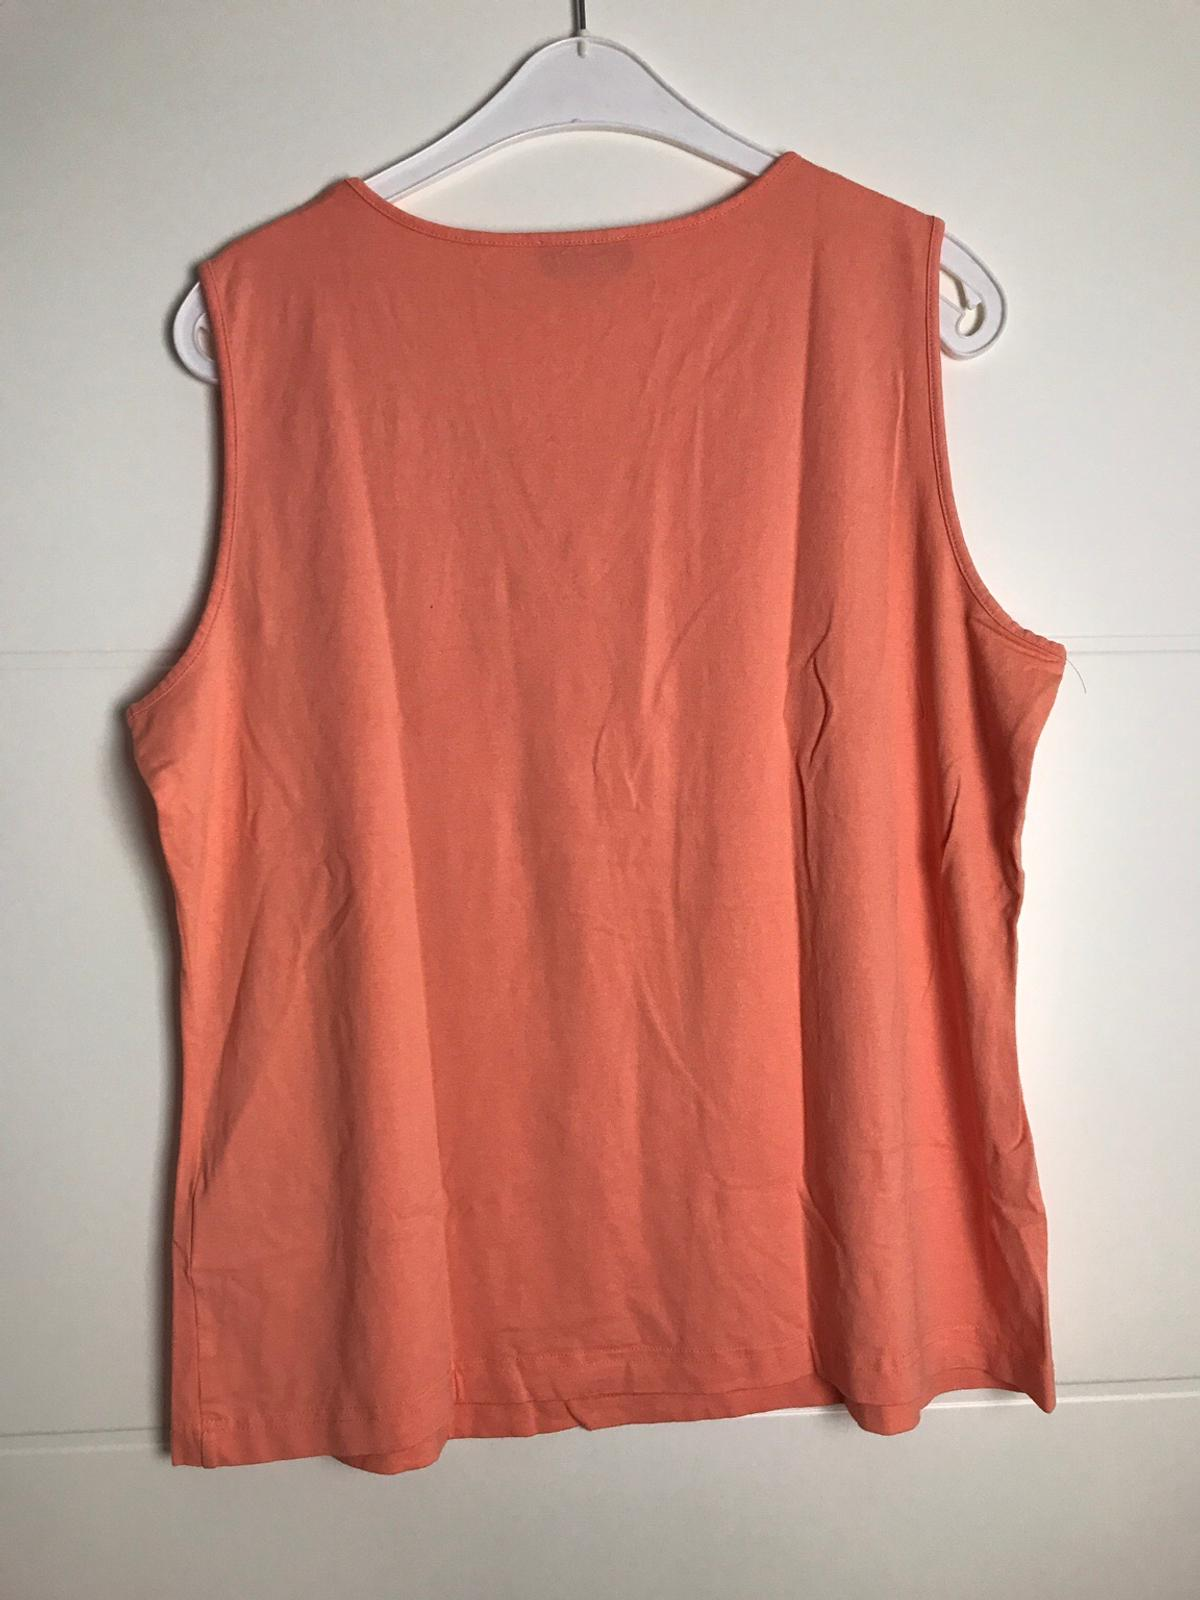 Apricot Farbe Gerry Weber Top In Gr. 44 In 30453 Hannover For €7.00 For Sale | Shpock